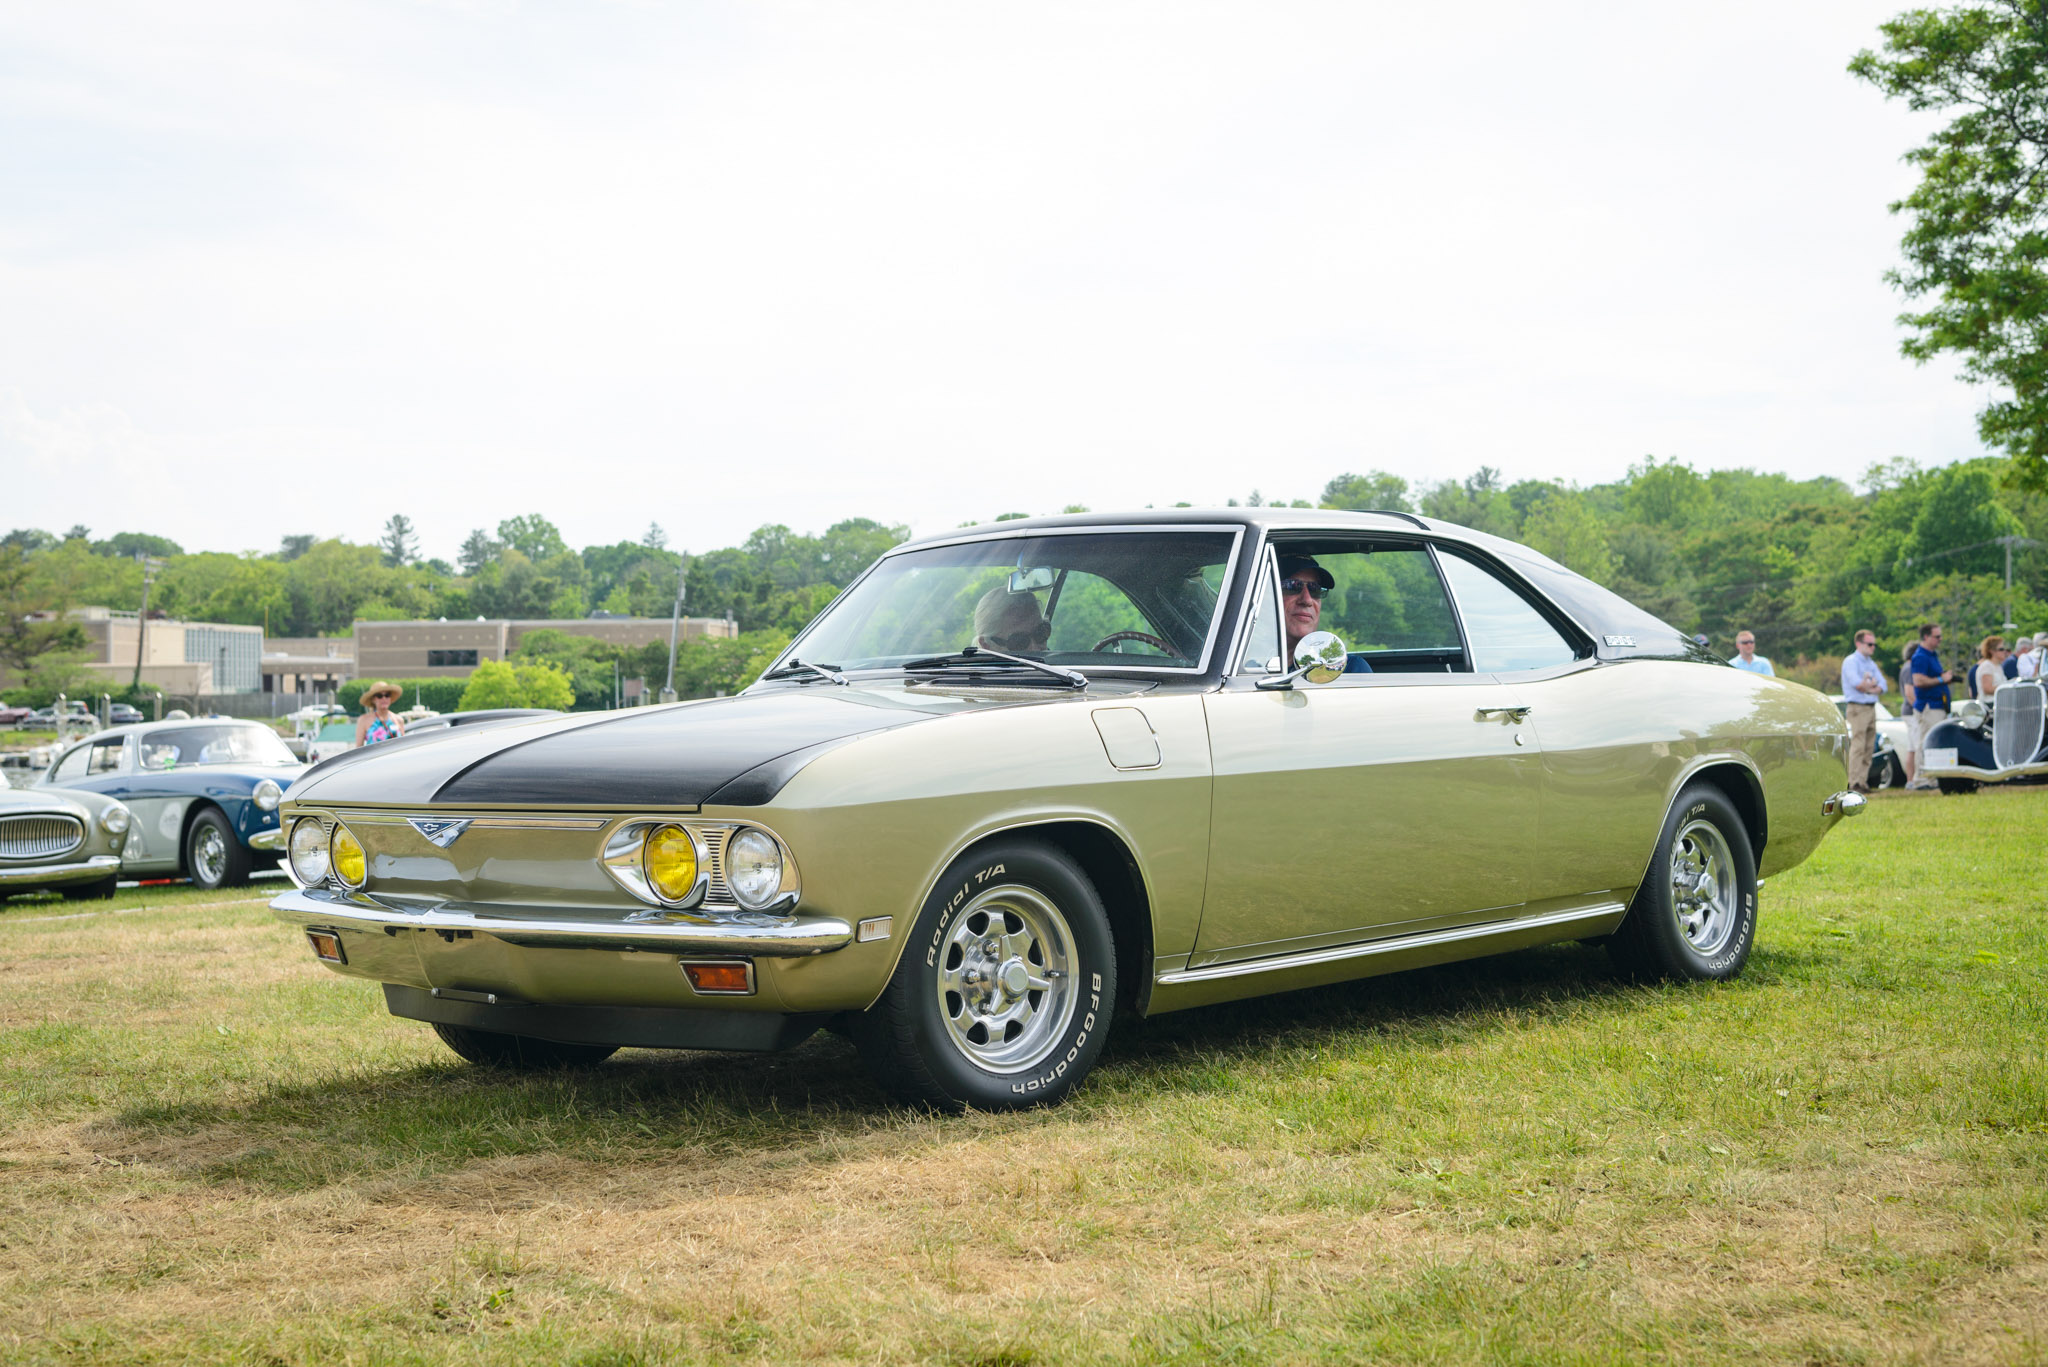 1968 Corvair Corsa Fitch Sprint Front 3/4